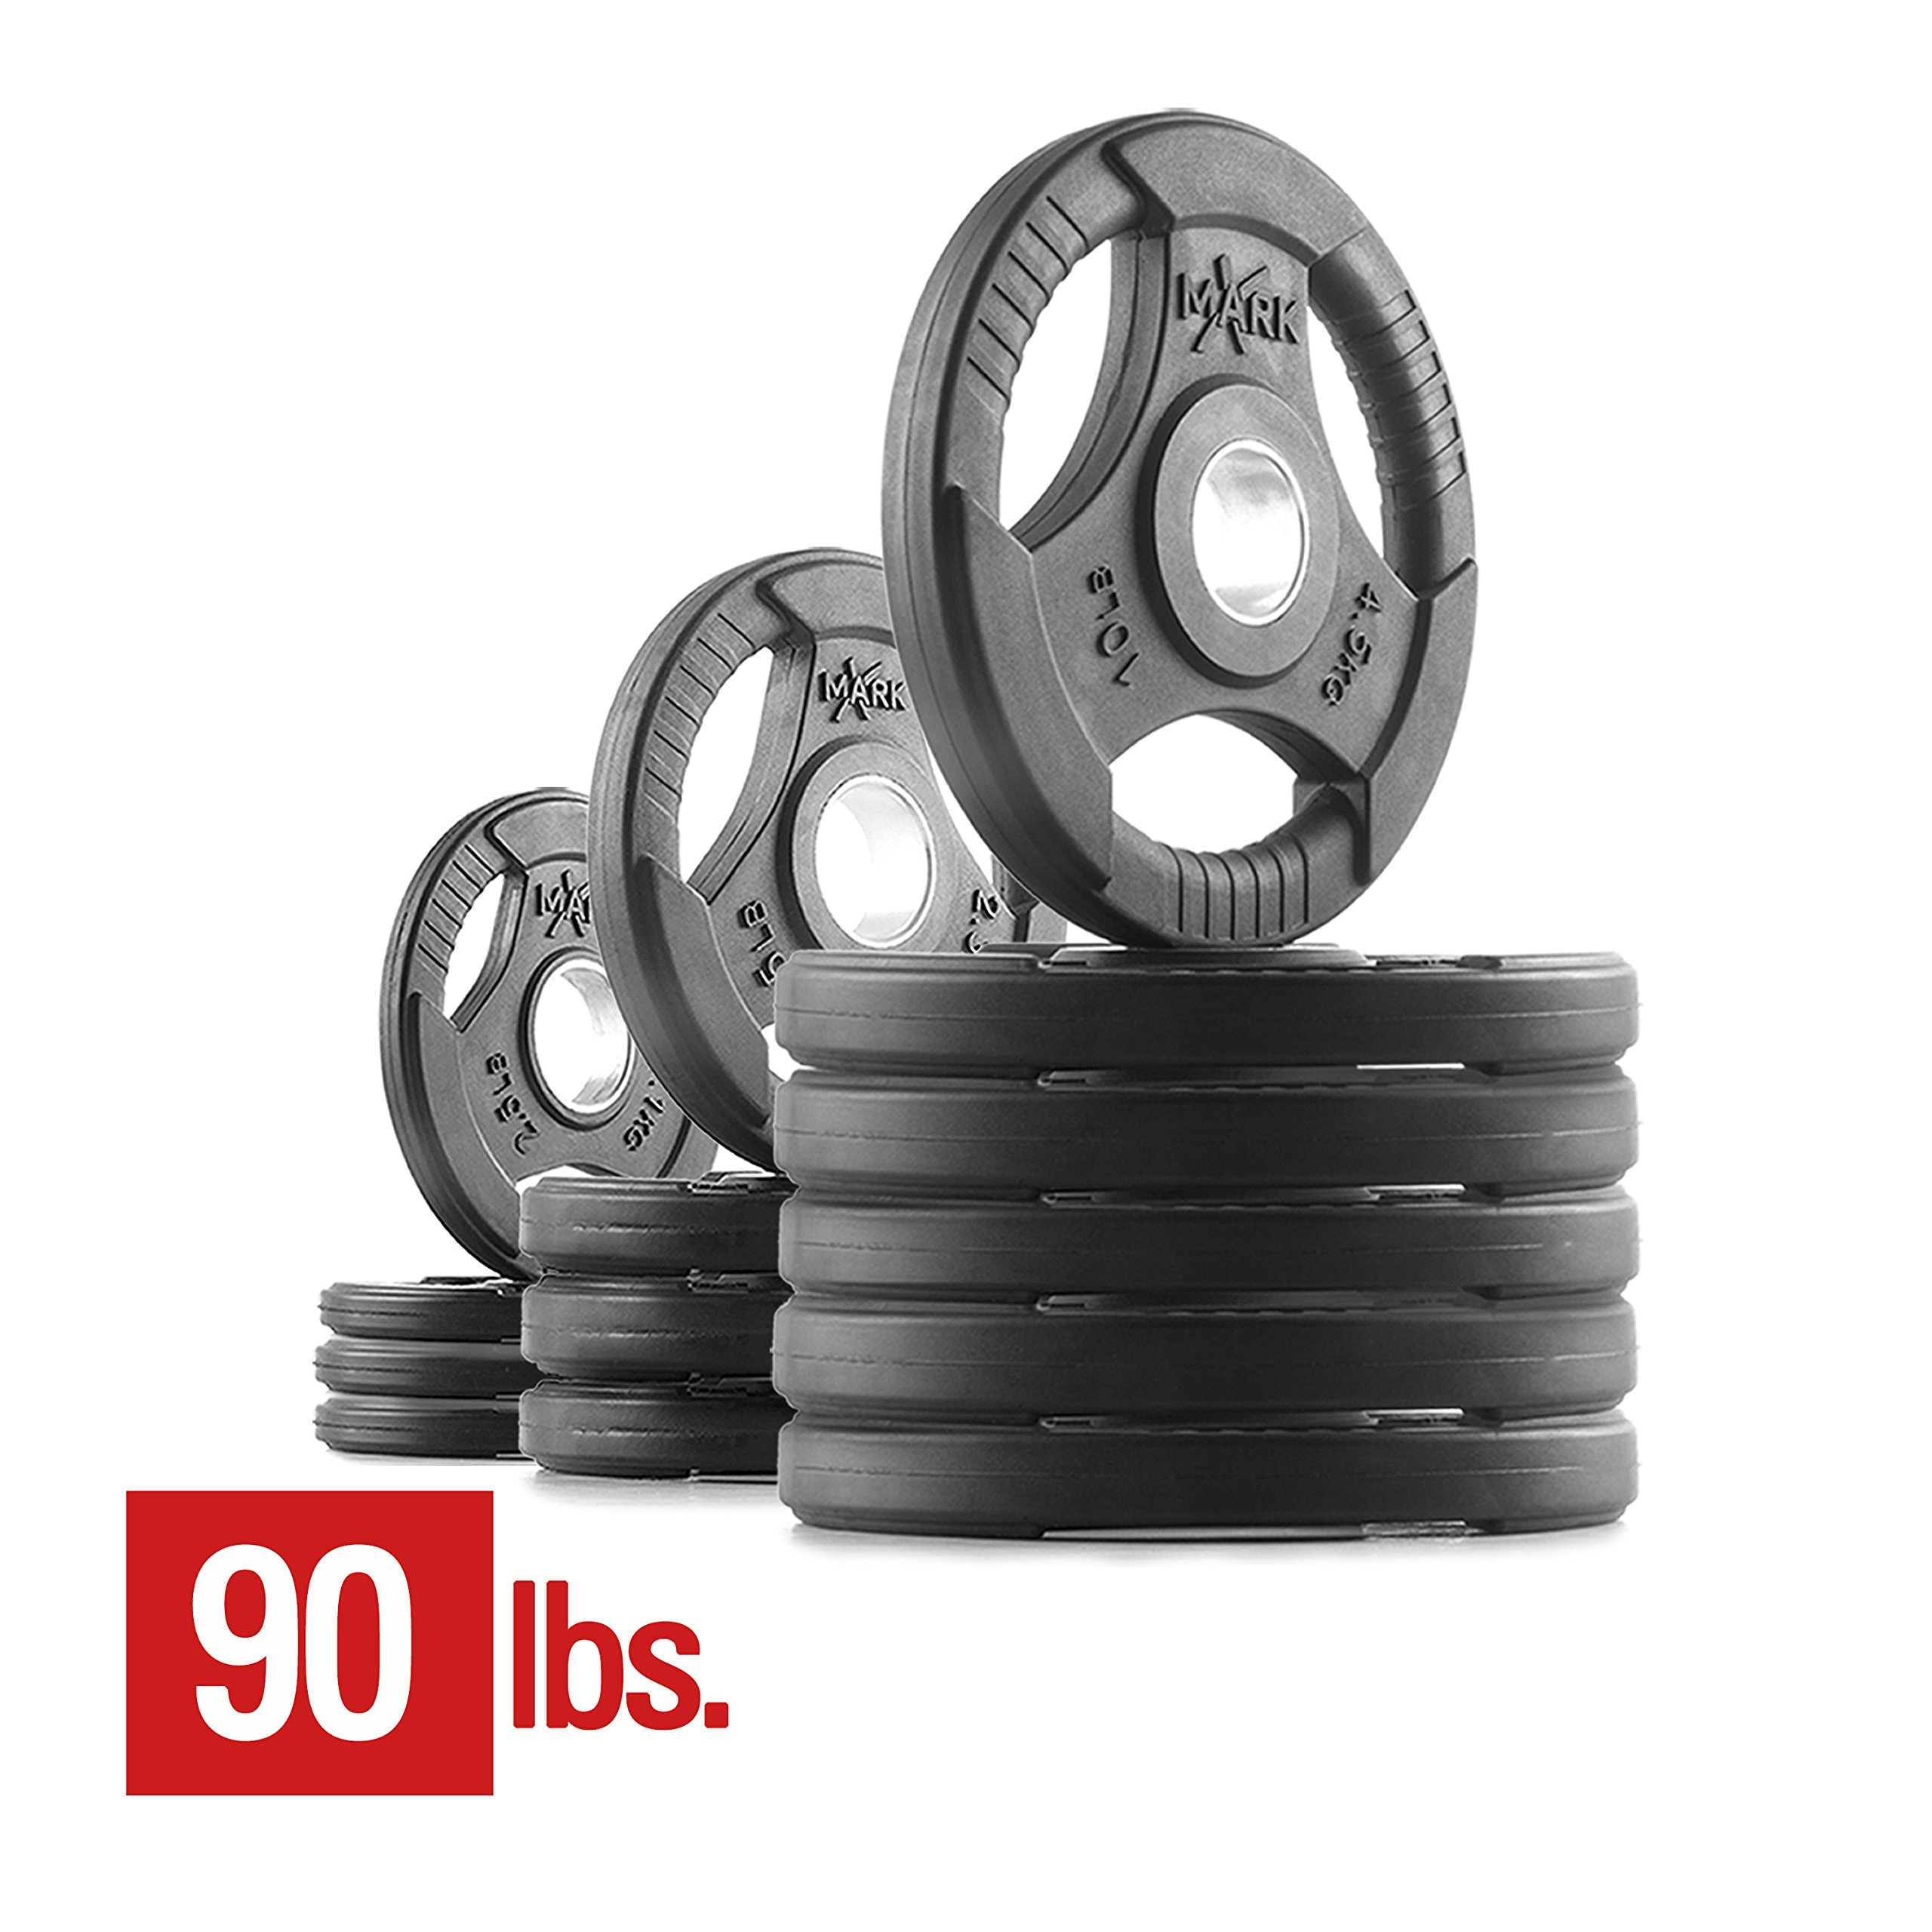 XMark Premium Quality Rubber Coated Tri-grip Olympic Plate Weights - 90 lb. Set